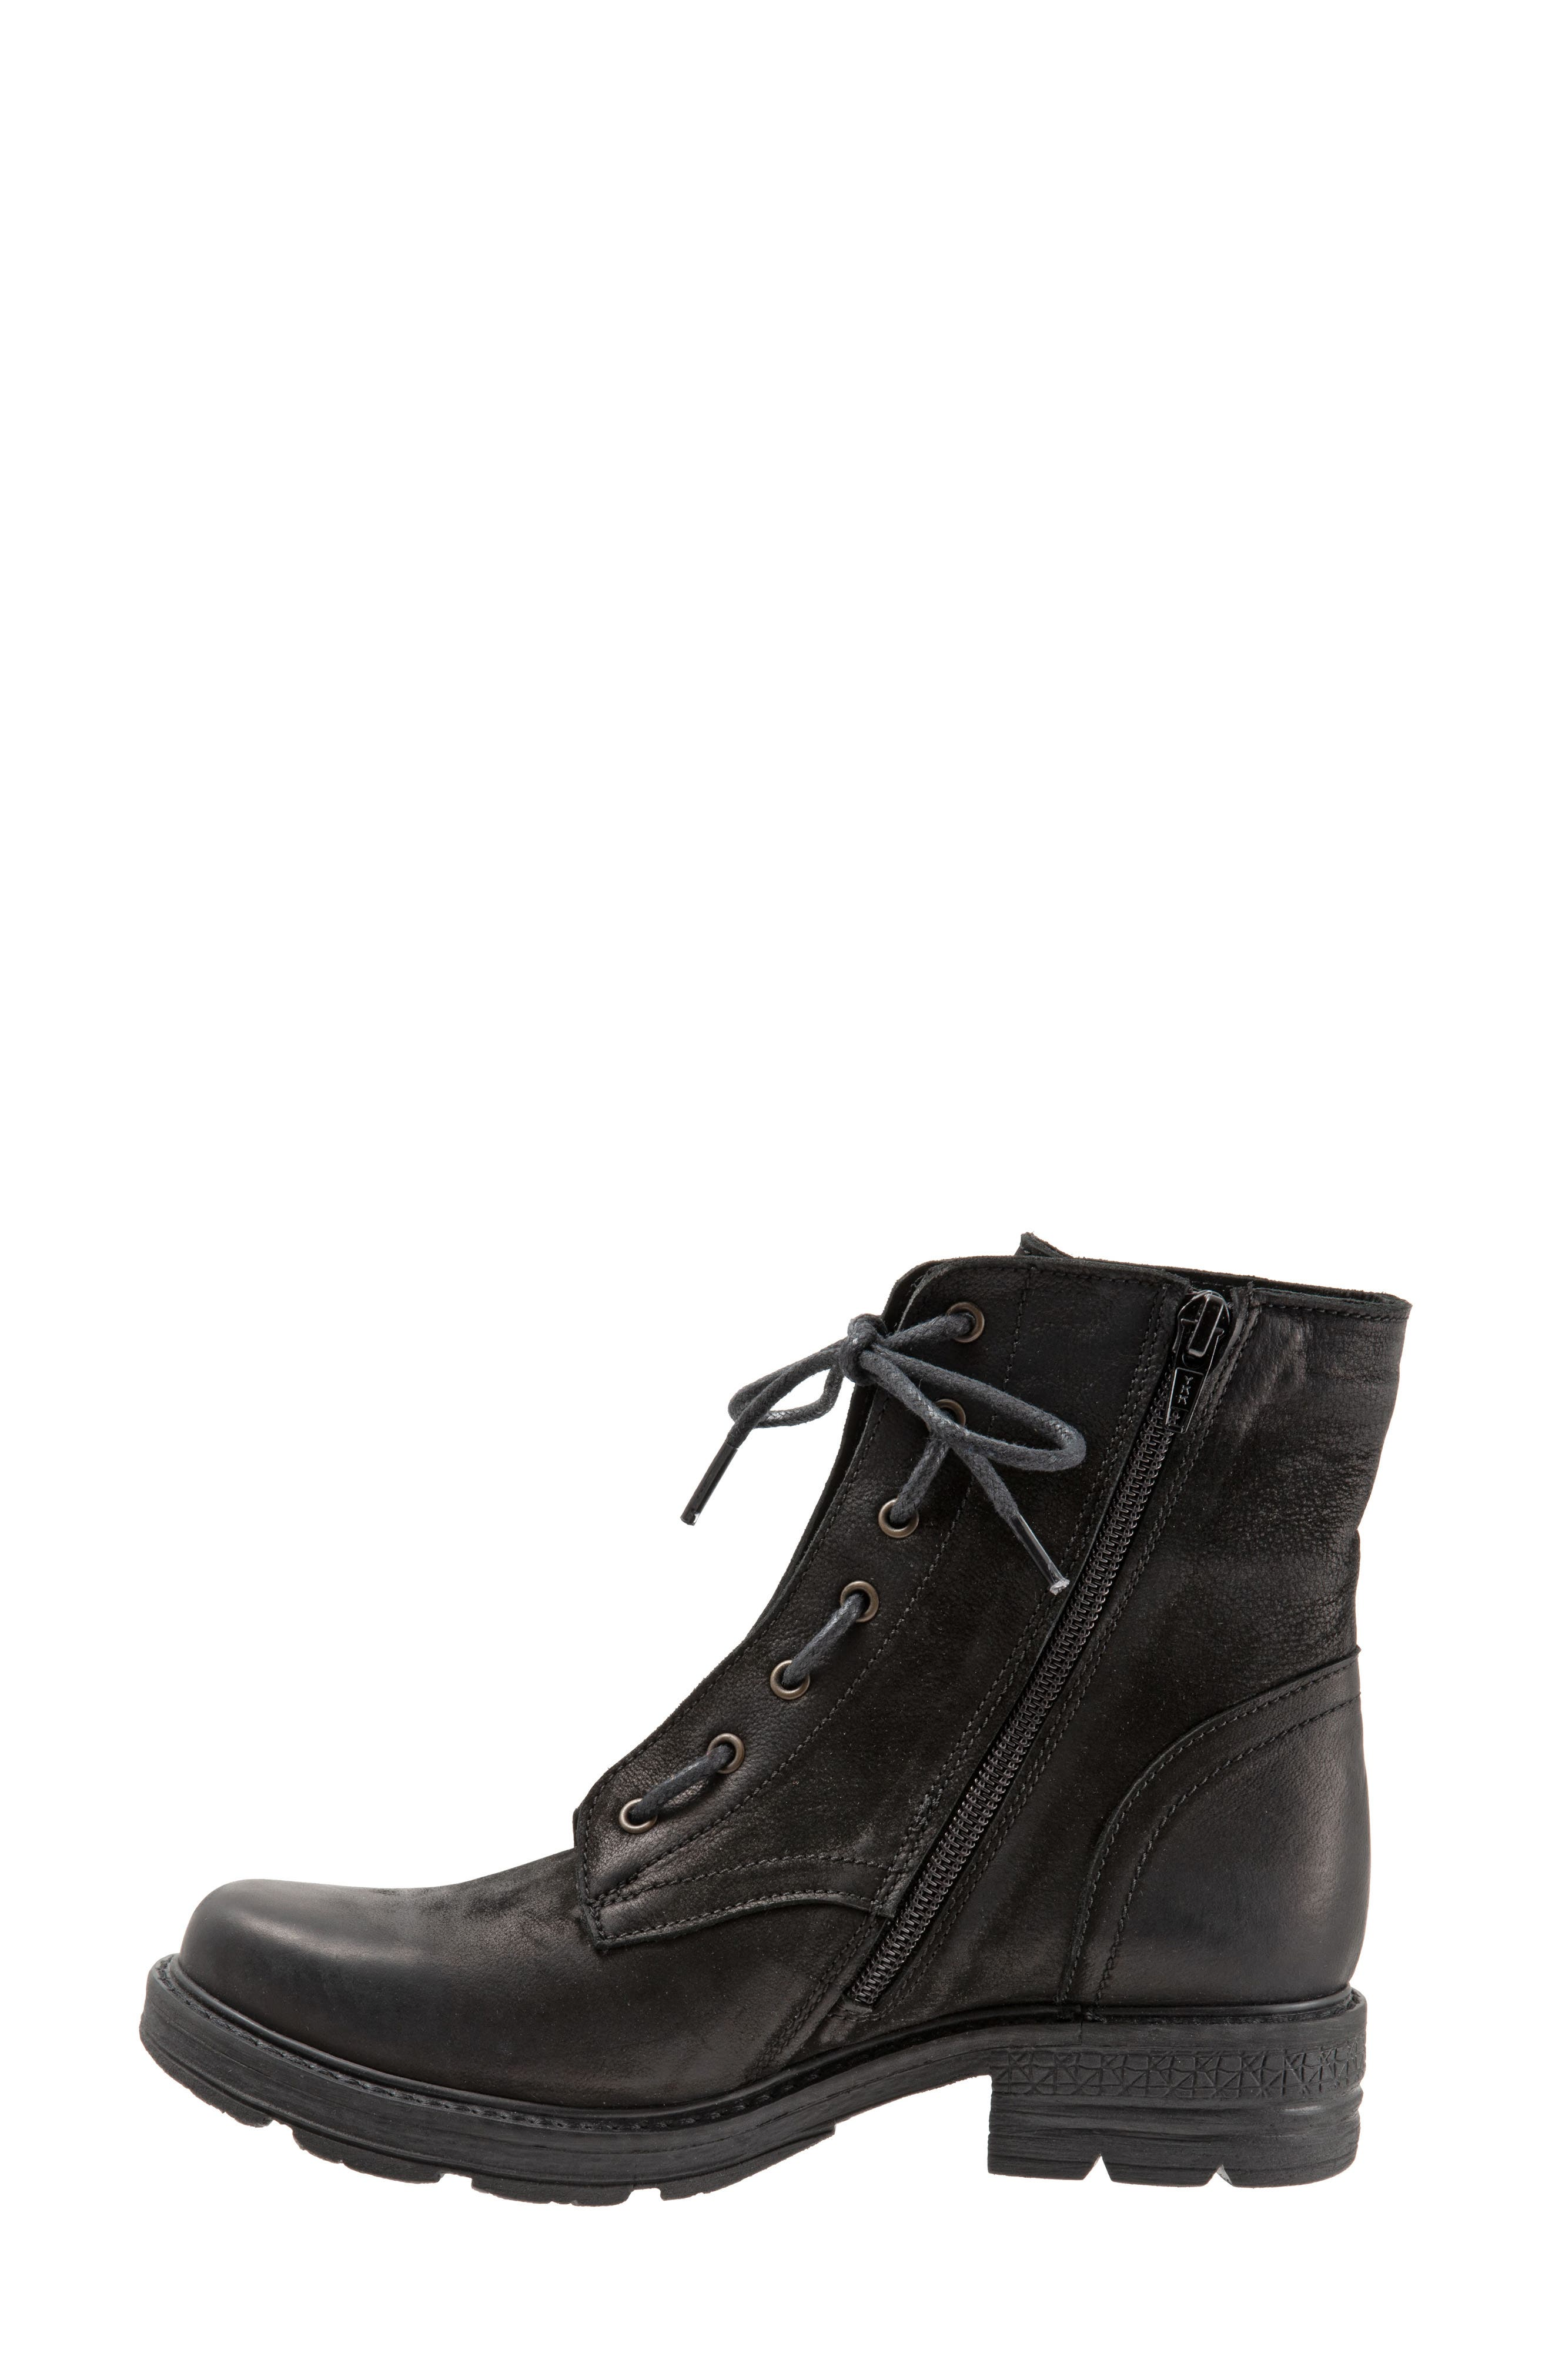 Getty Military Boot,                             Alternate thumbnail 8, color,                             BLACK NATURAL LEATHER